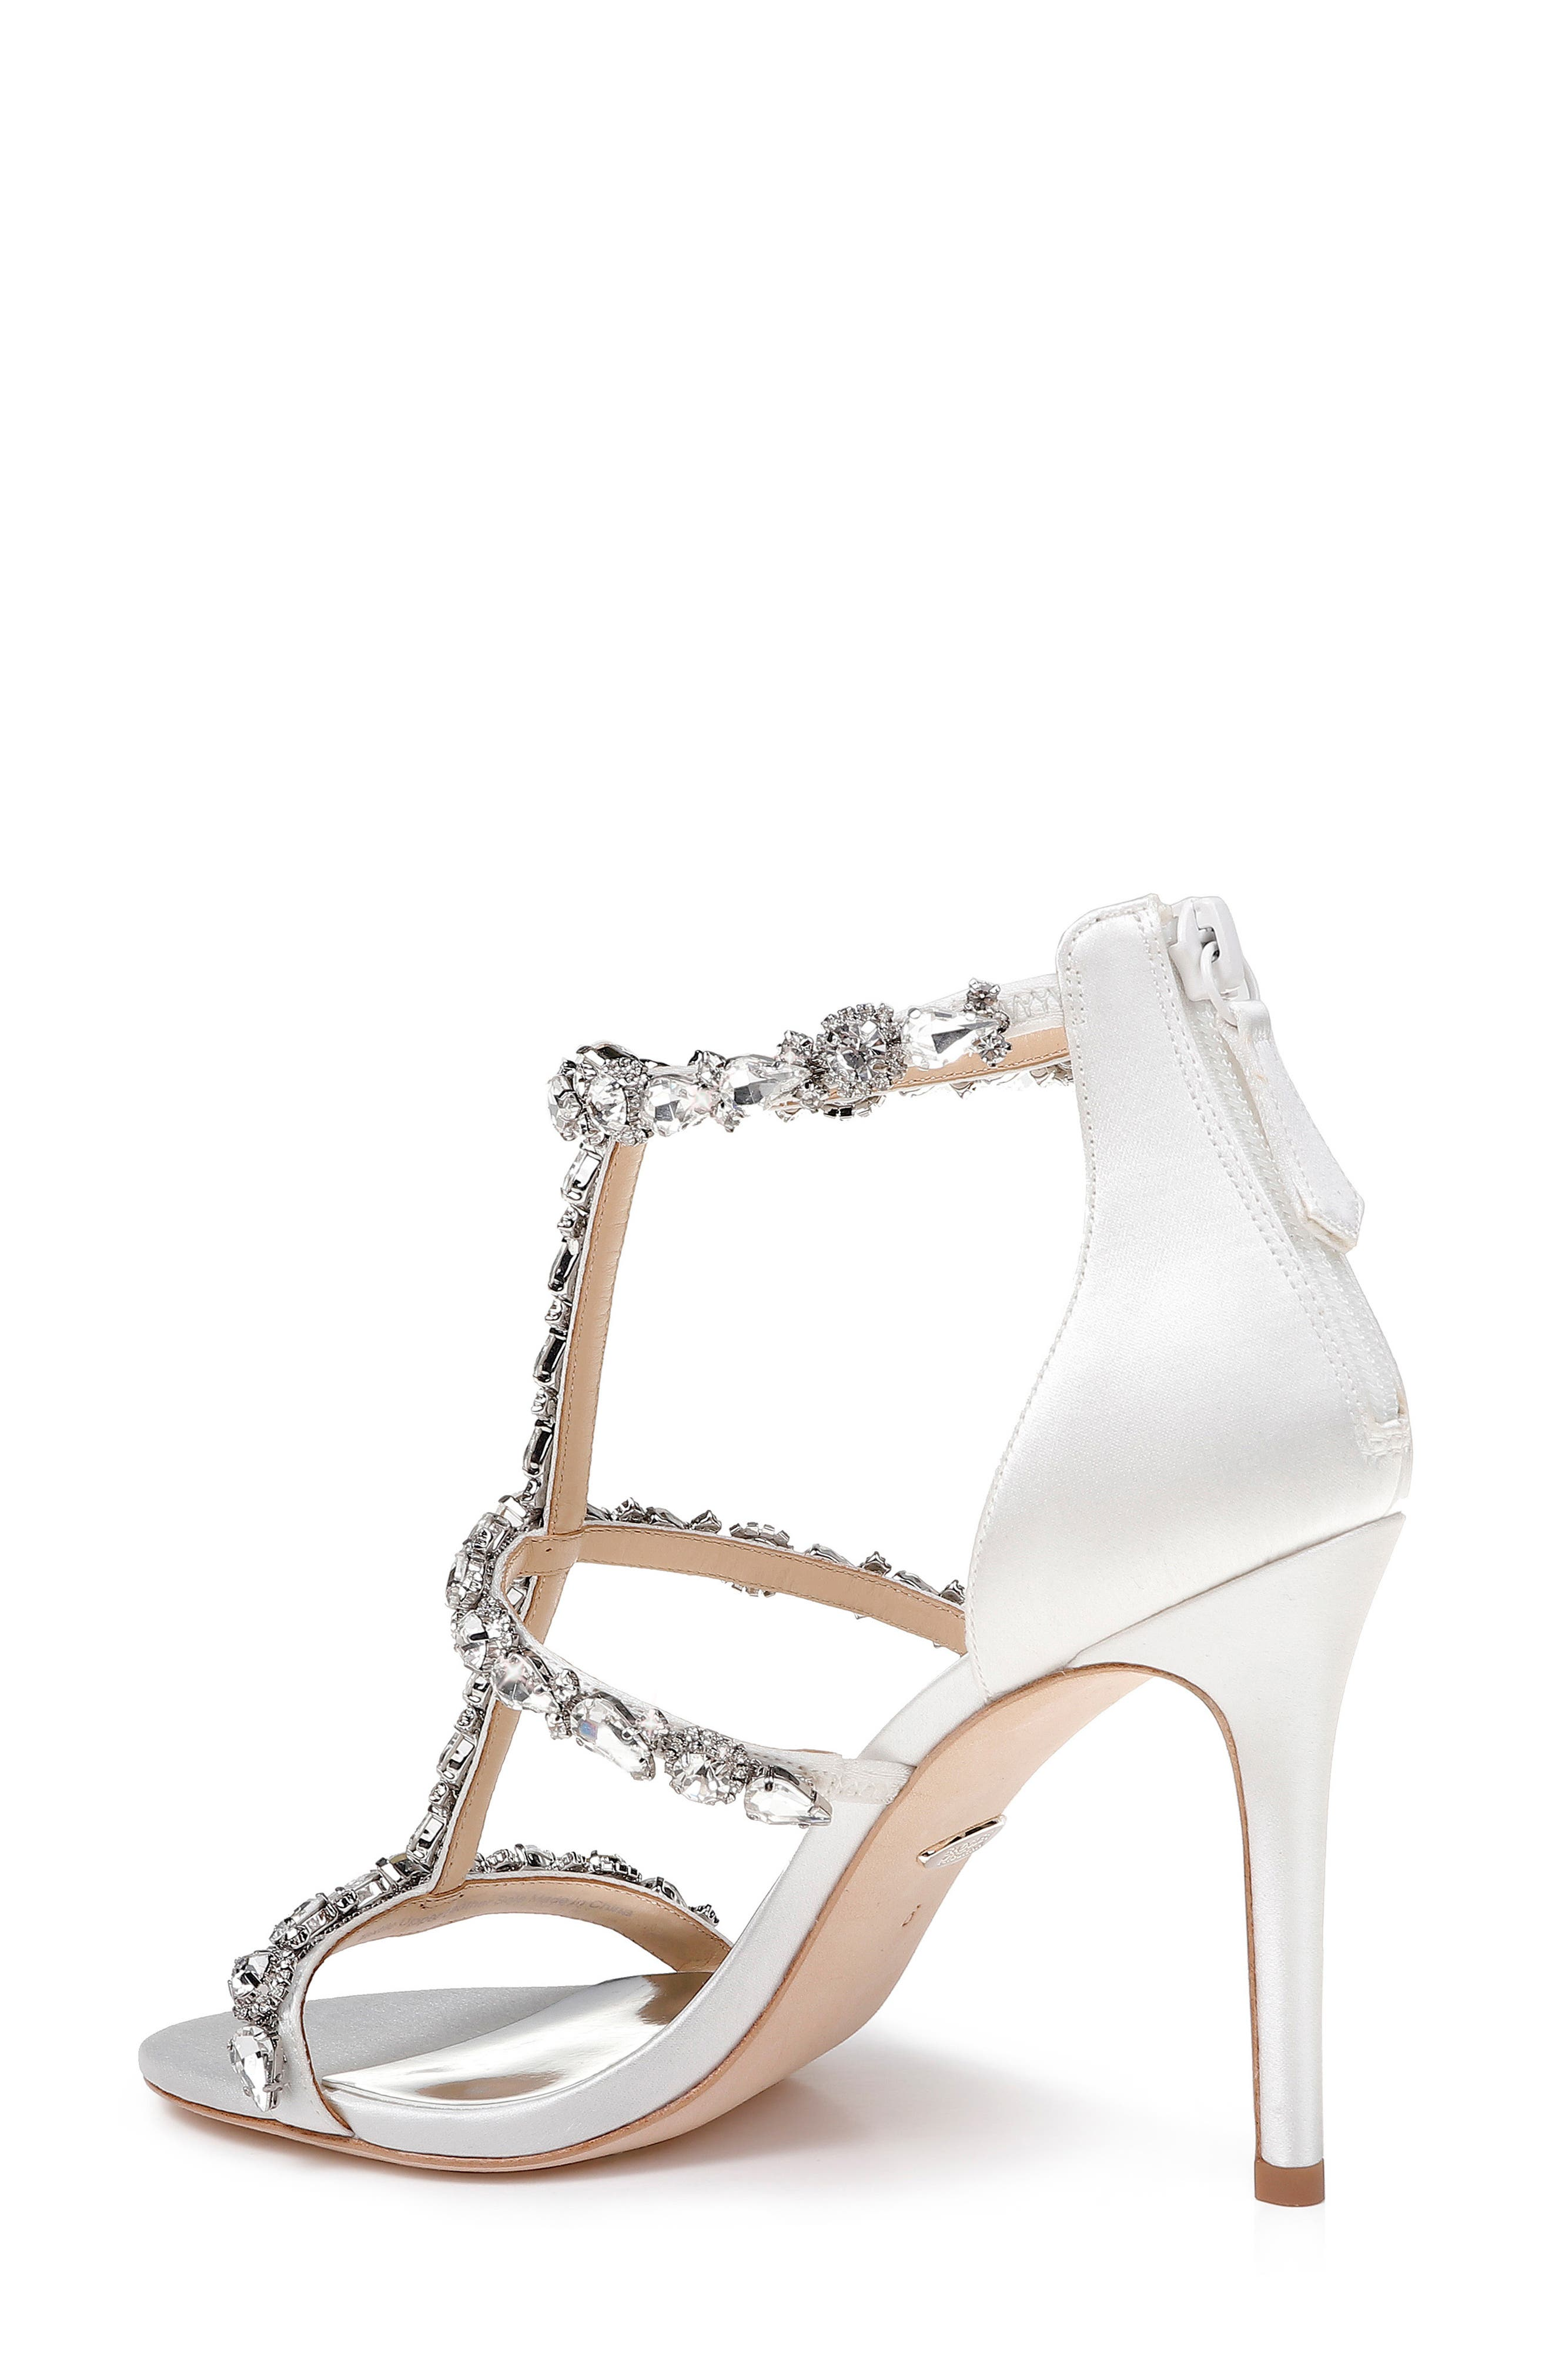 Querida Embellished Sandal,                             Alternate thumbnail 2, color,                             SOFT WHITE SATIN